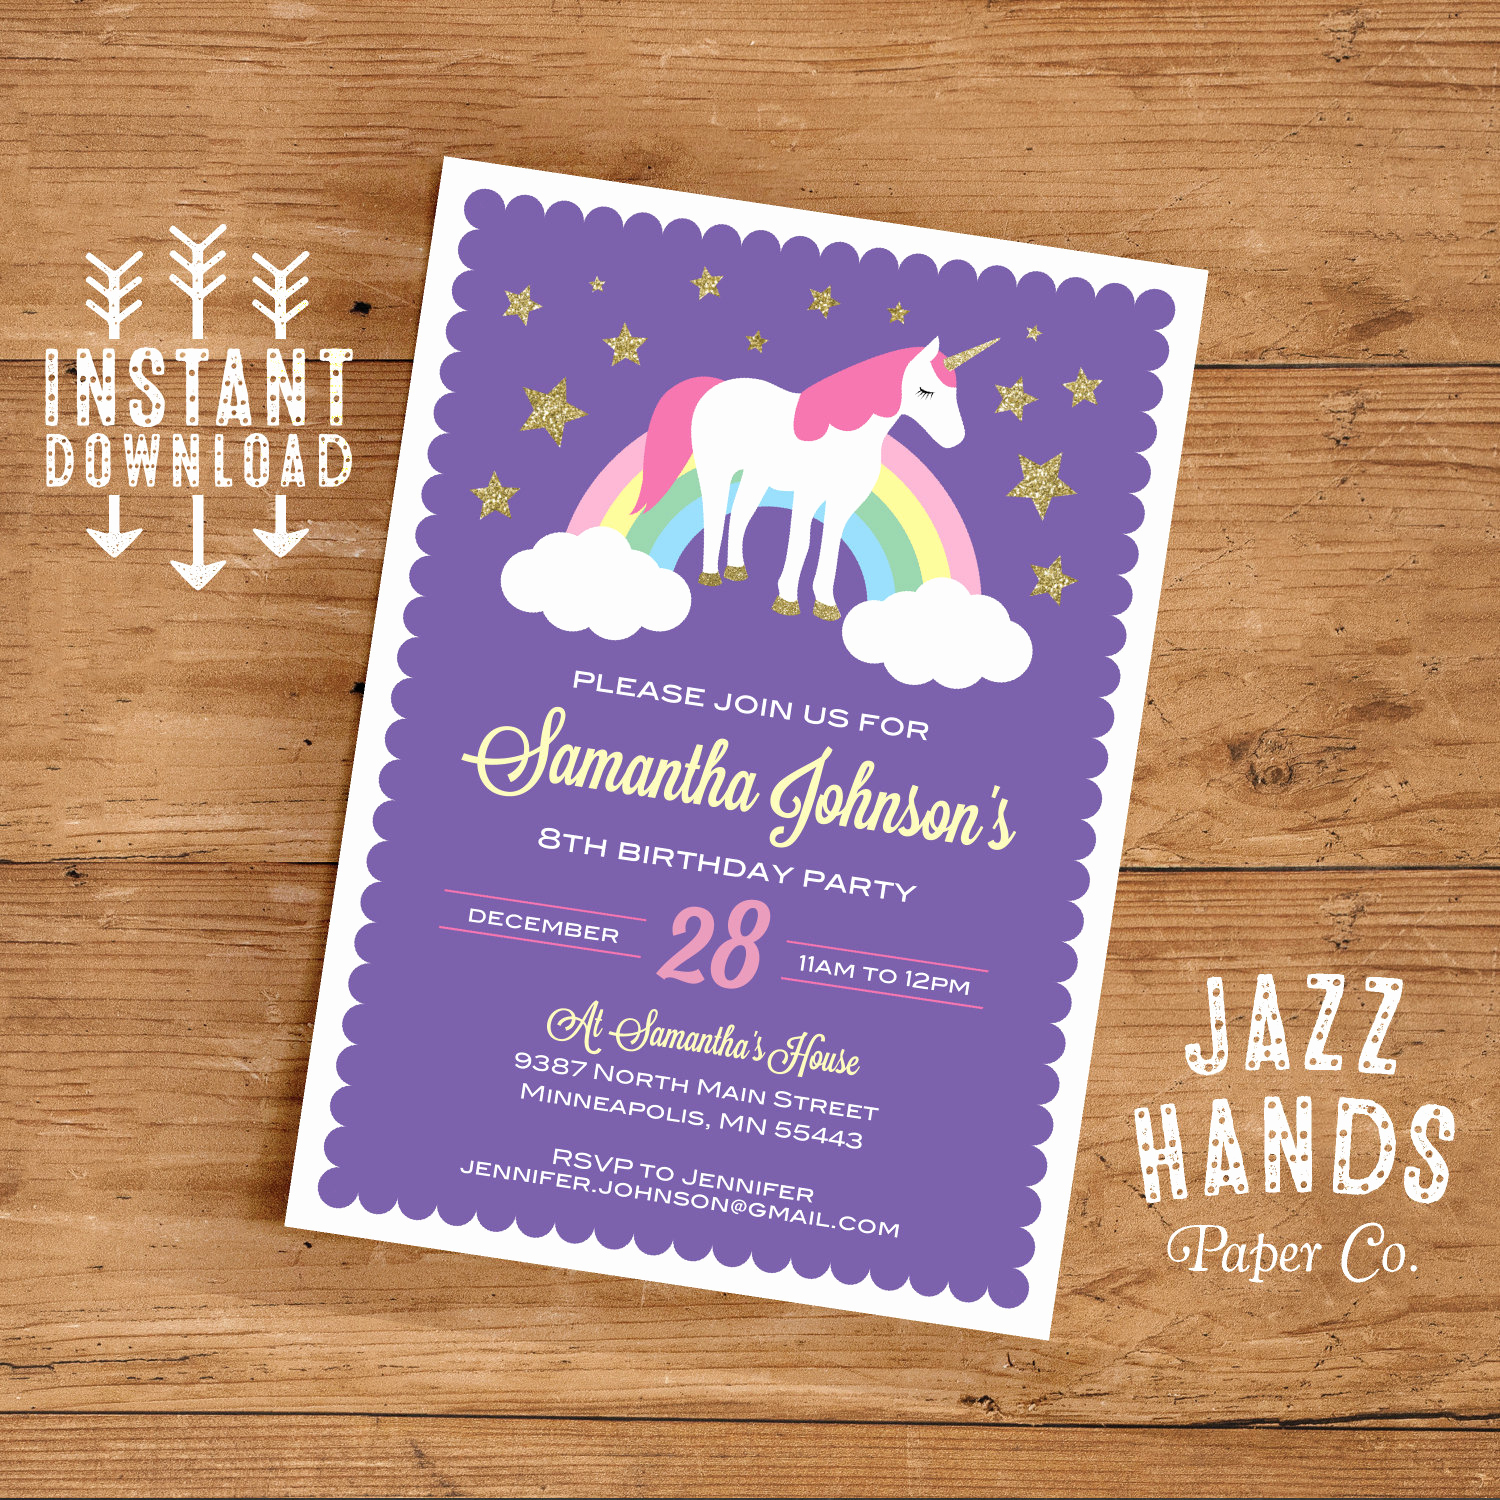 Favorite Things Party Invitation Template Elegant Unicorn Birthday Invitation Template Diy Printable Unicorn